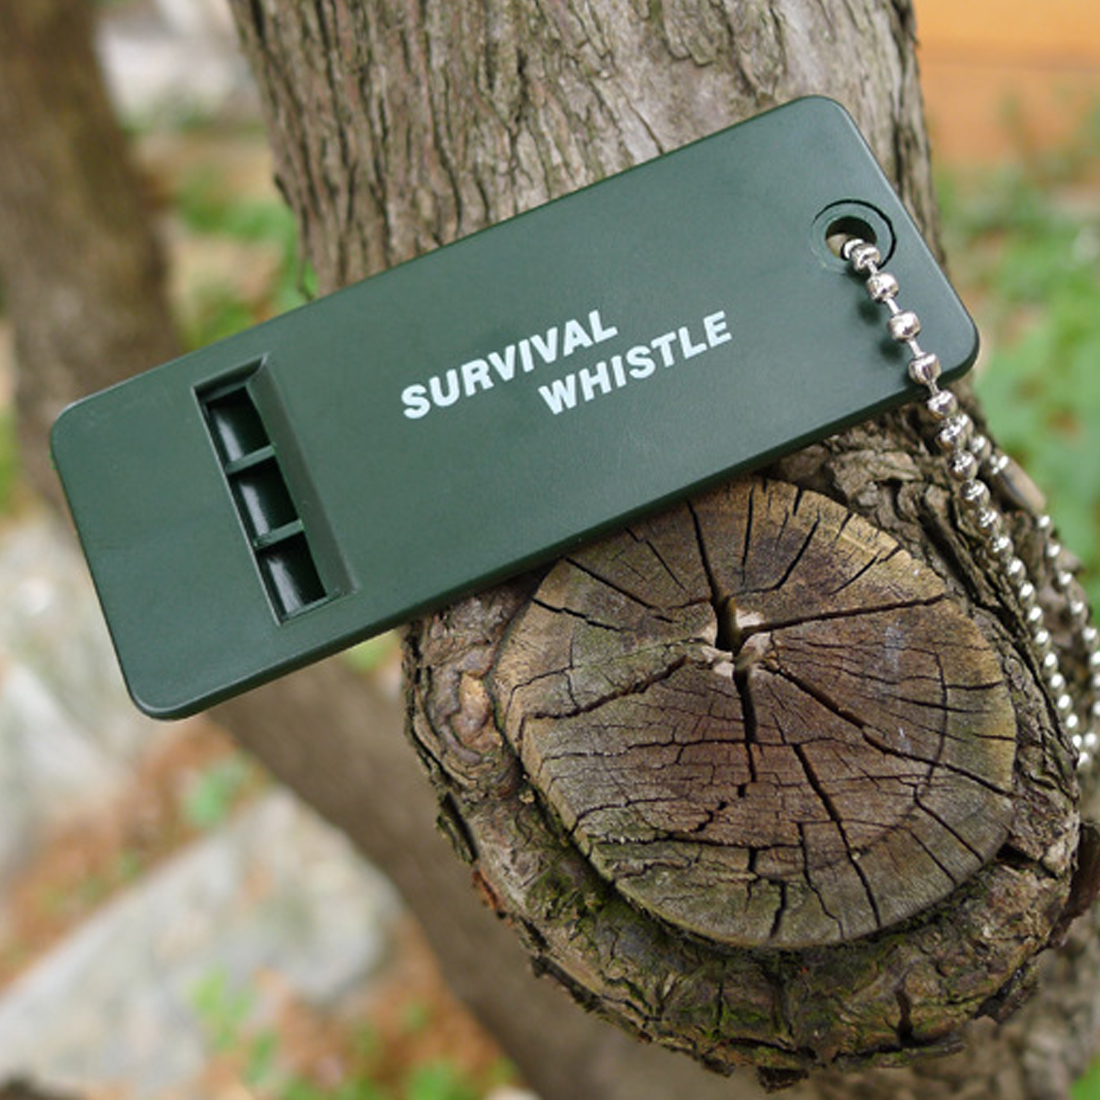 Hot sell Survival Whistle First Aid Kits Outdoor Emergency Signal Rescue Camping Hiking outdoor sport referee practical(China)